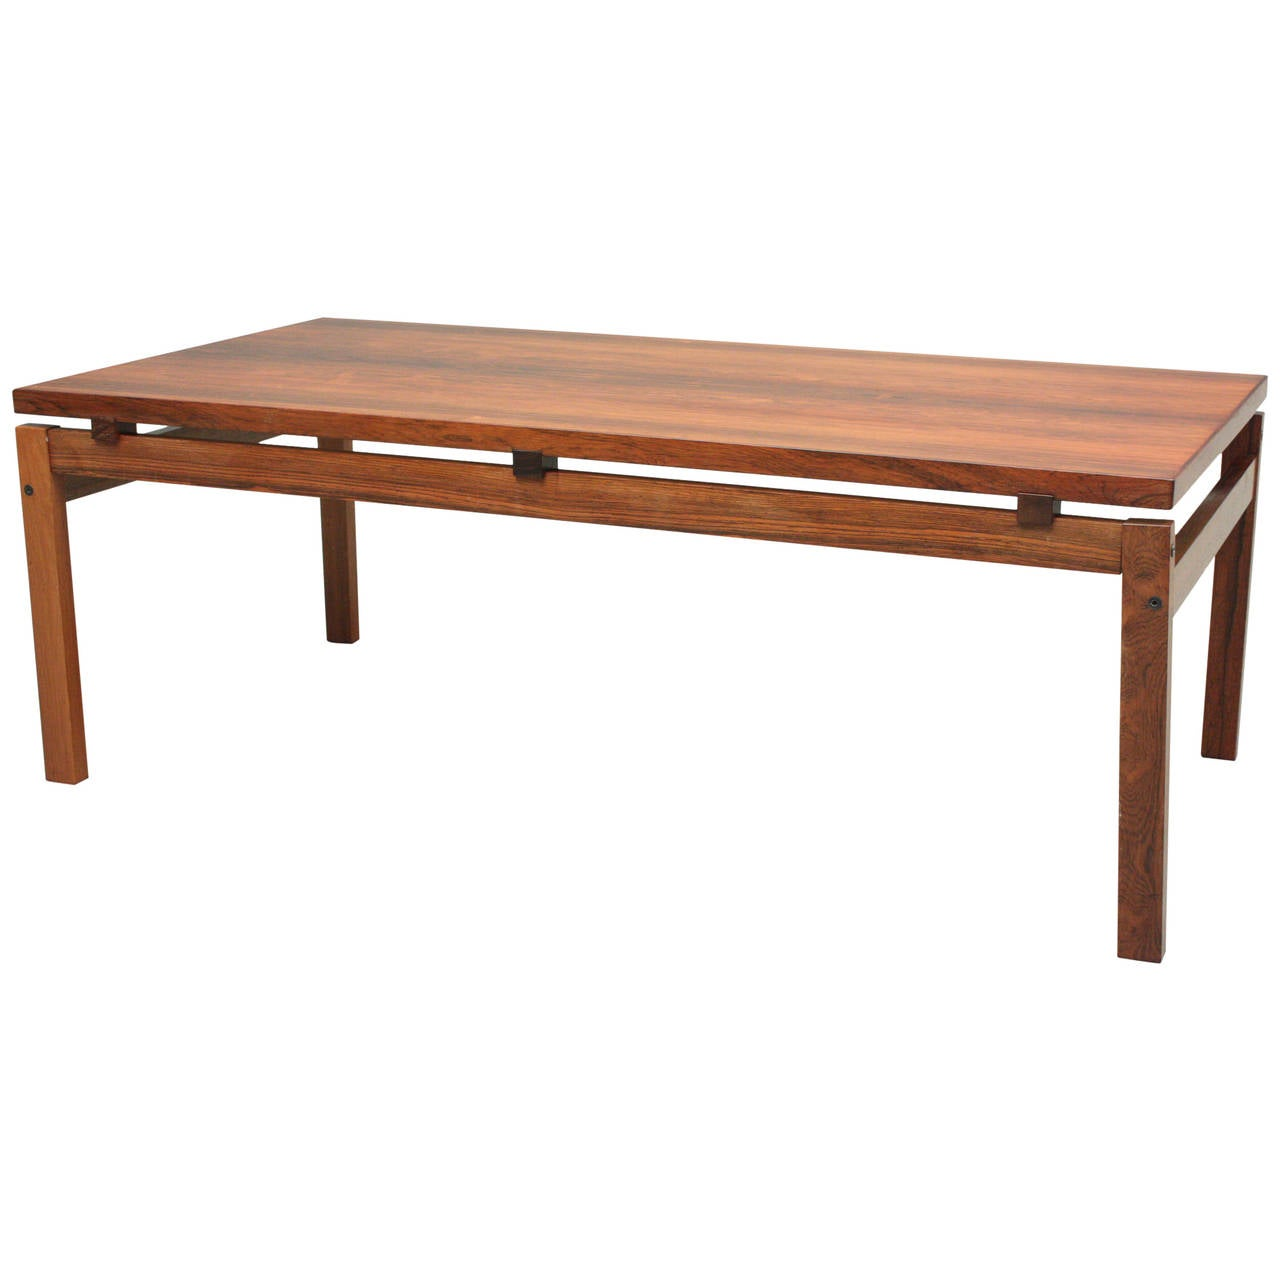 Mid century modern rosewood coffee table at 1stdibs for Mid century modern coffee table